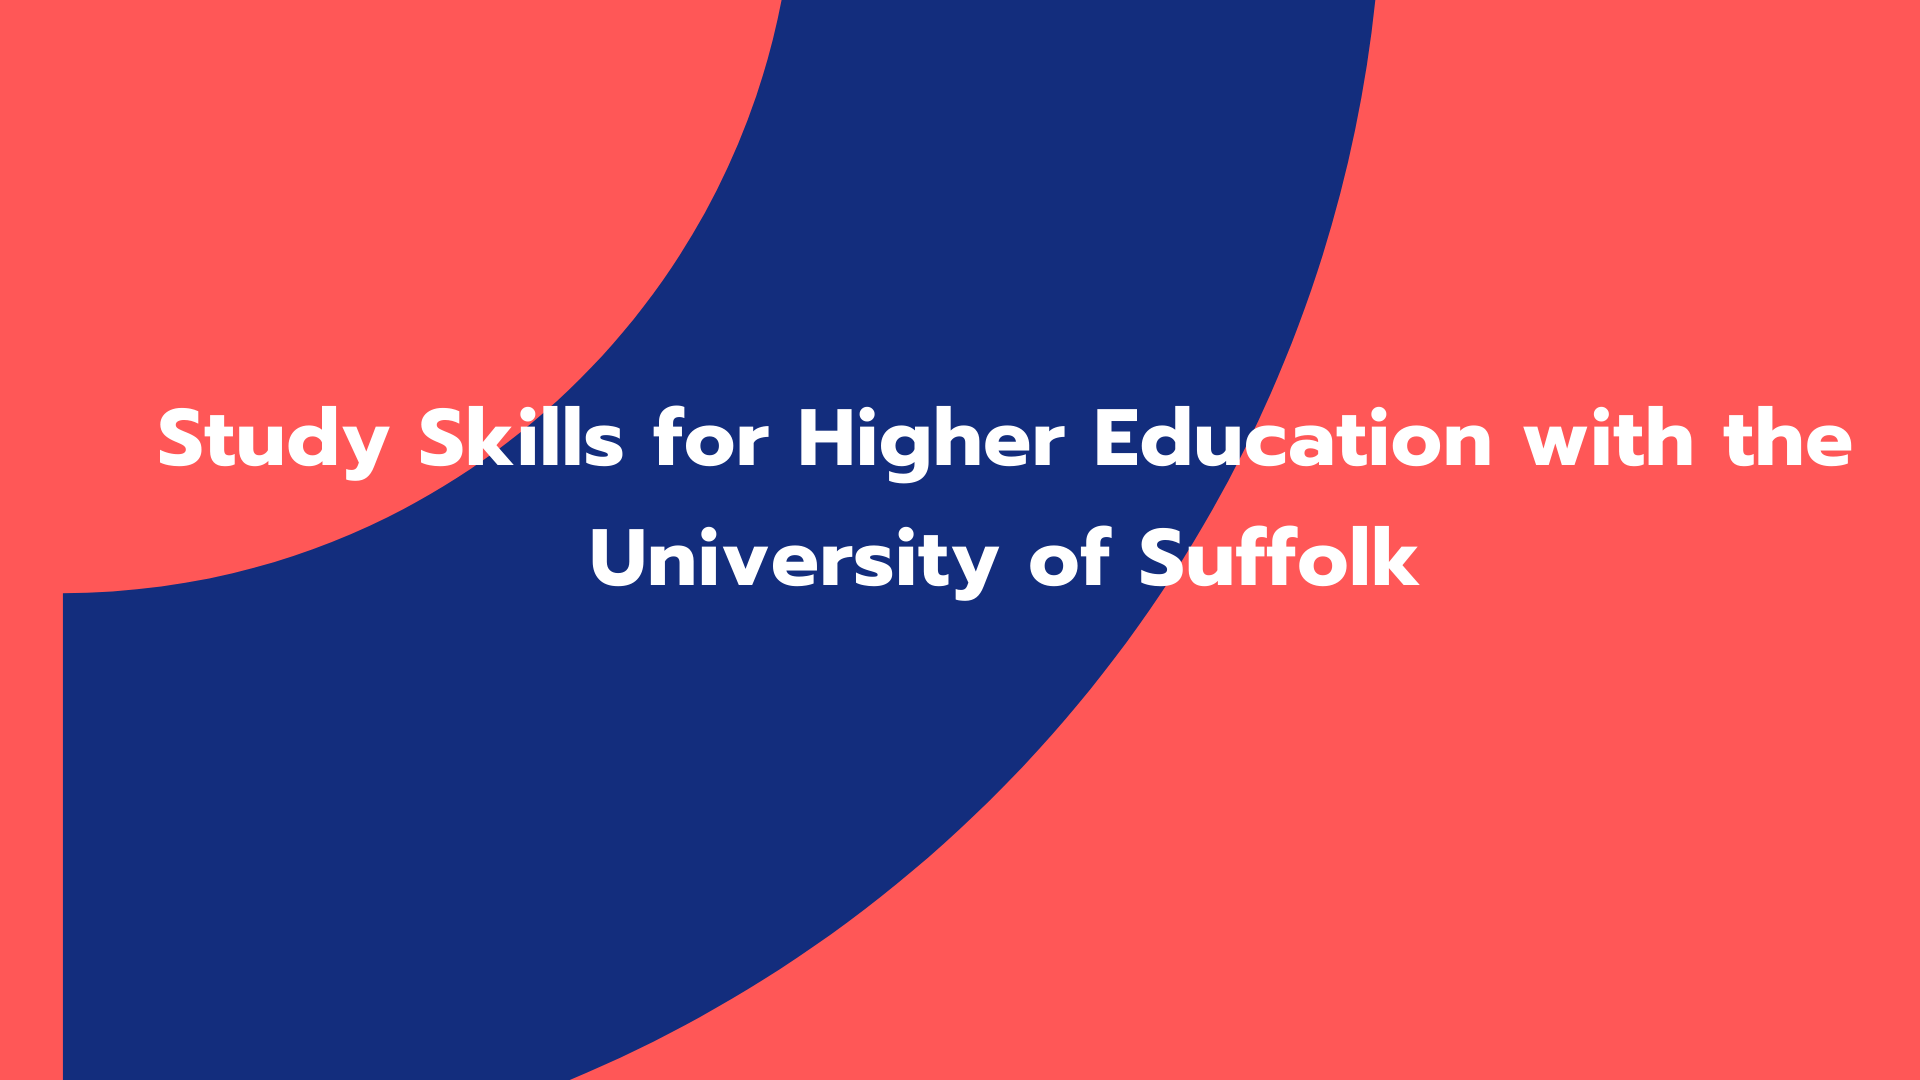 Study Skills for Higher Education with the University of Suffolk